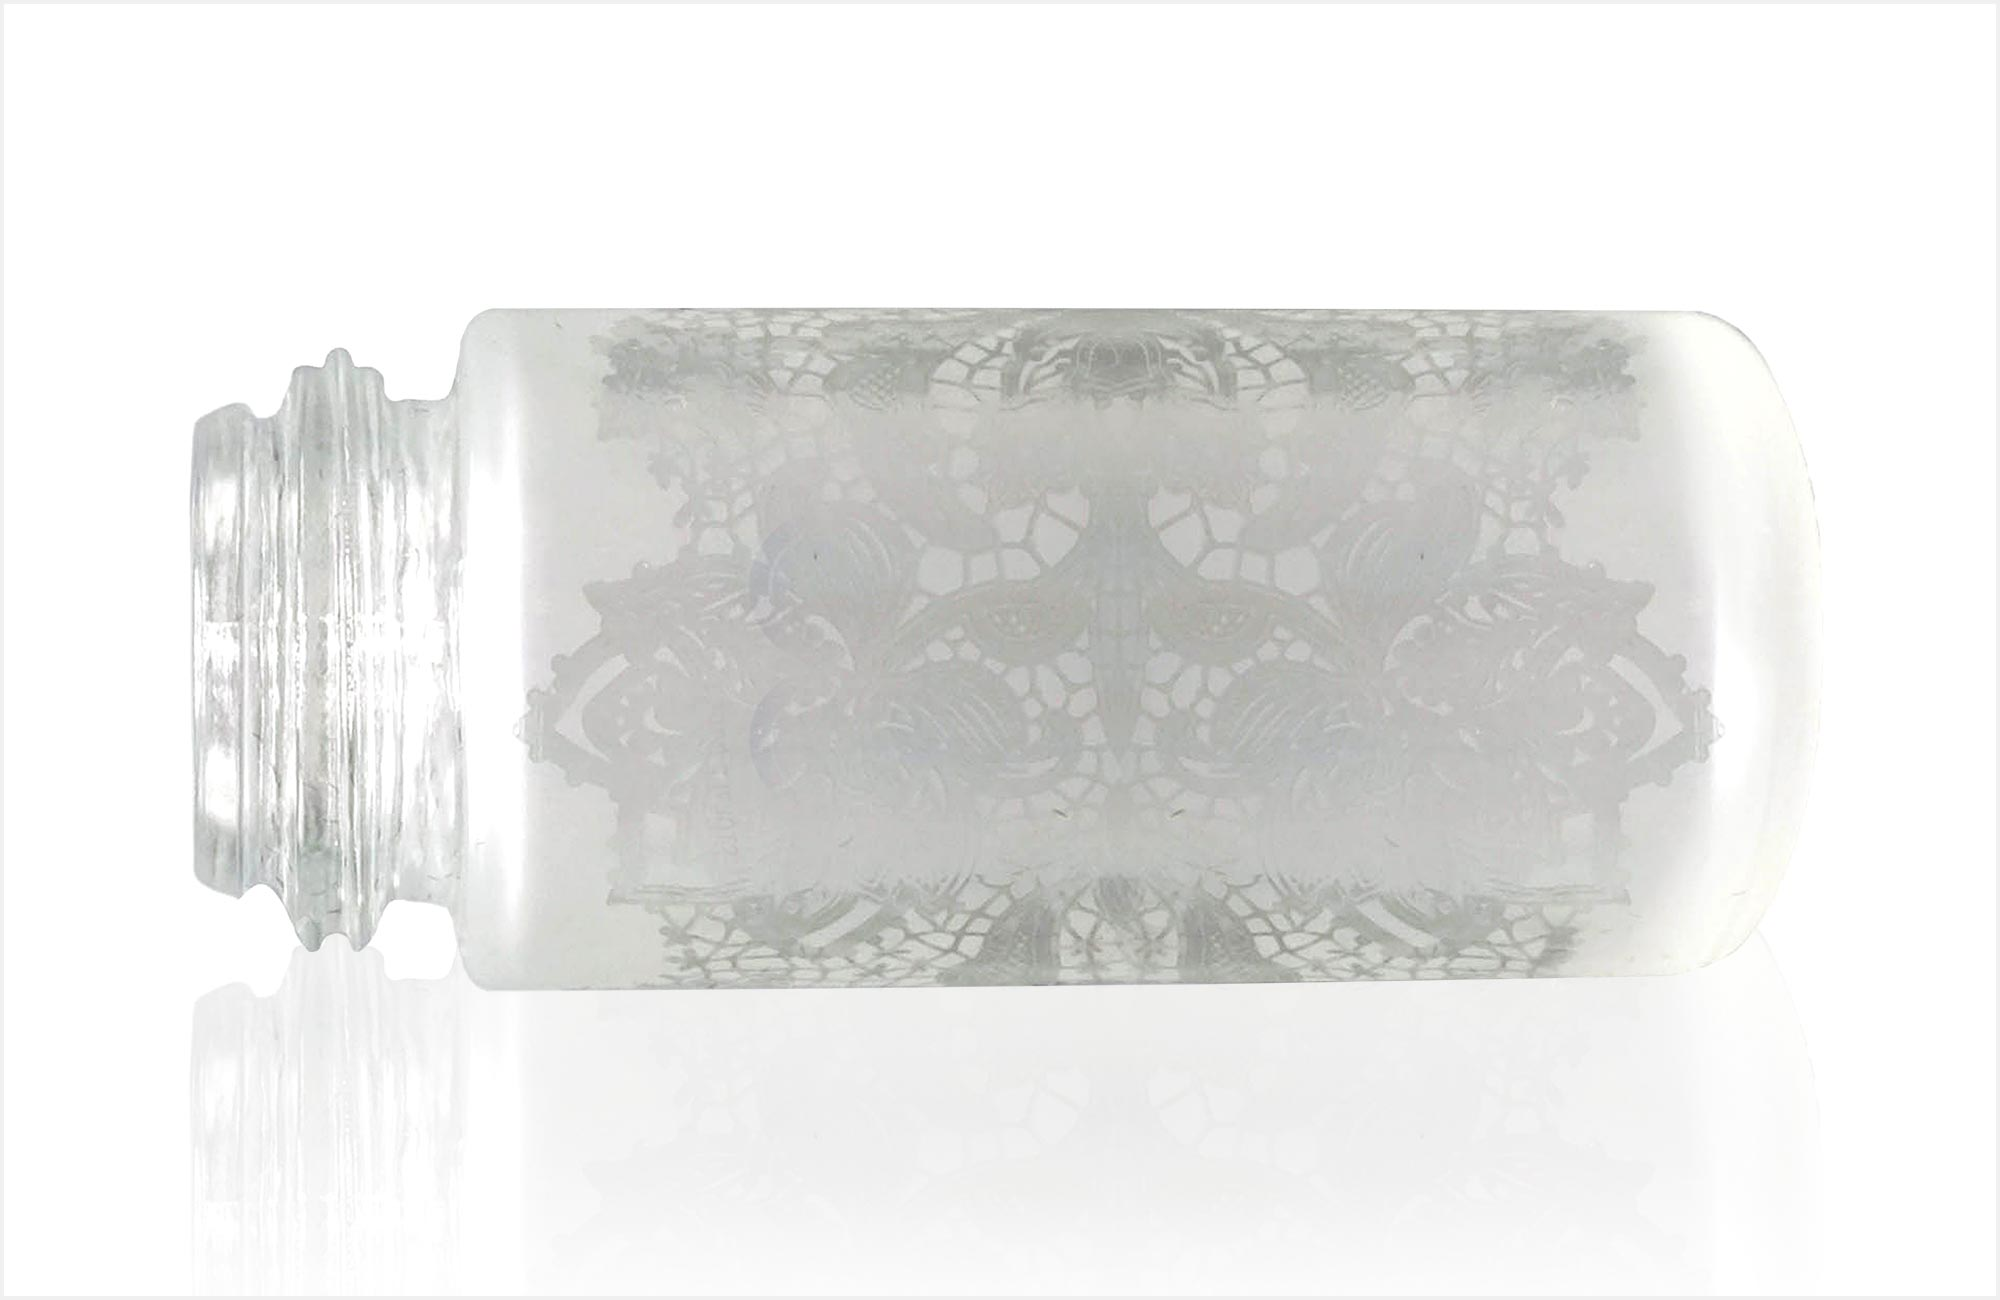 Sample of glass bottle decorated with masked frosting